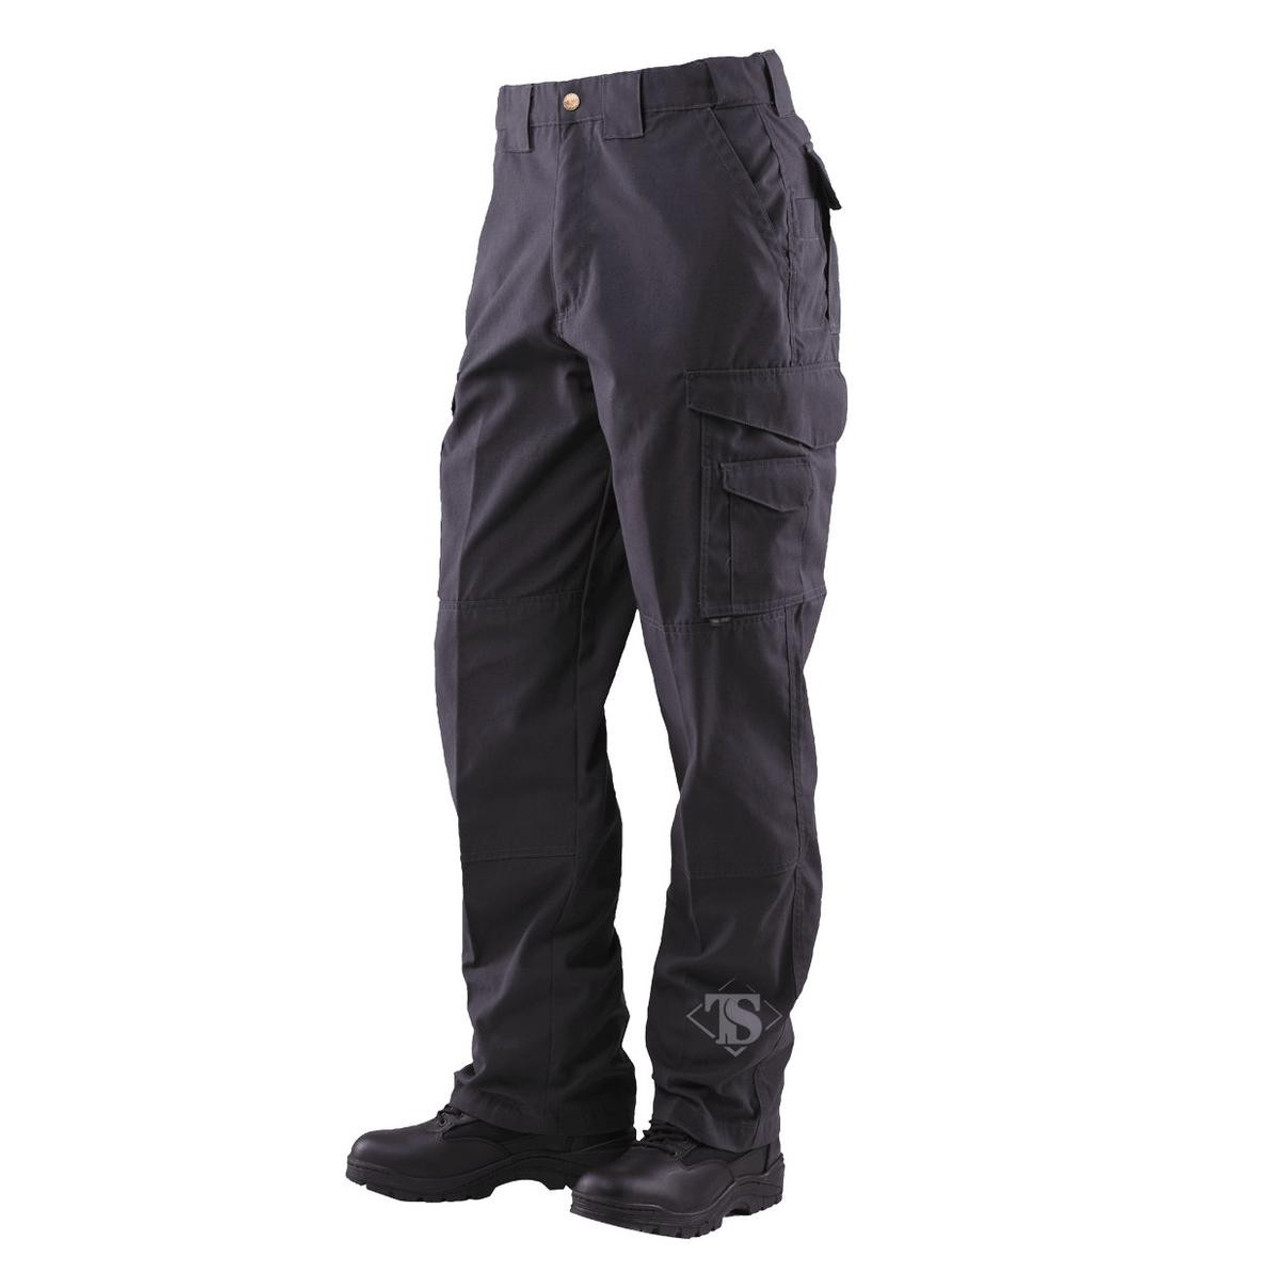 TRU-SPEC 24-7 Classic Pants for Women